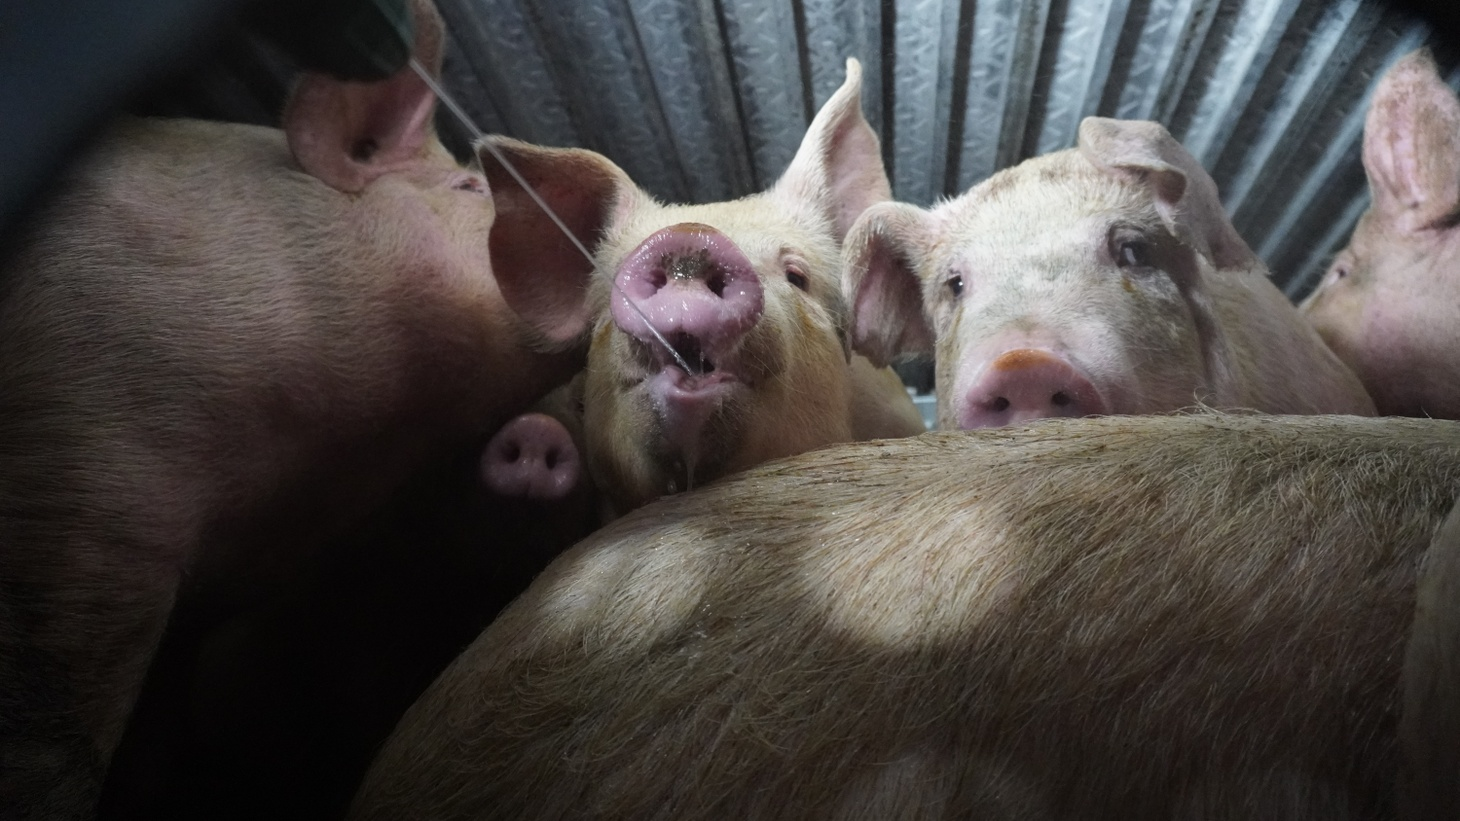 Pigs arrive at the Farmer John slaughterhouse in a truck, closely stacked together. Activists give them comfort of any kind before their death.